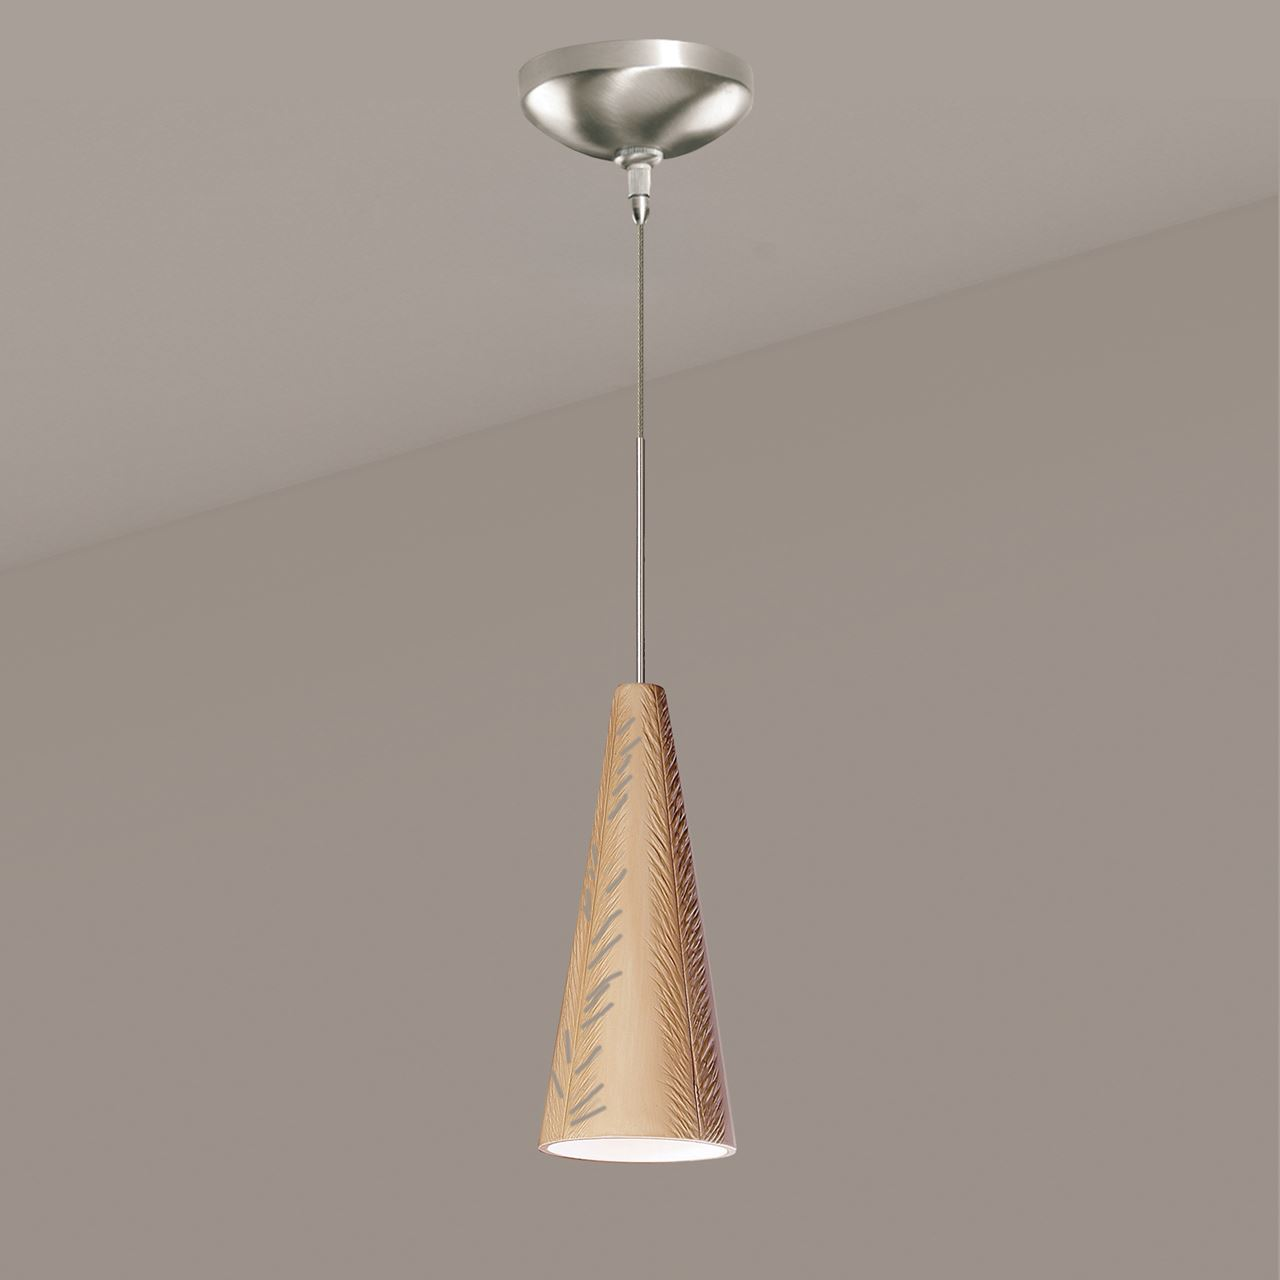 Picture of A19 Ceramic Pendant Light   Fossil